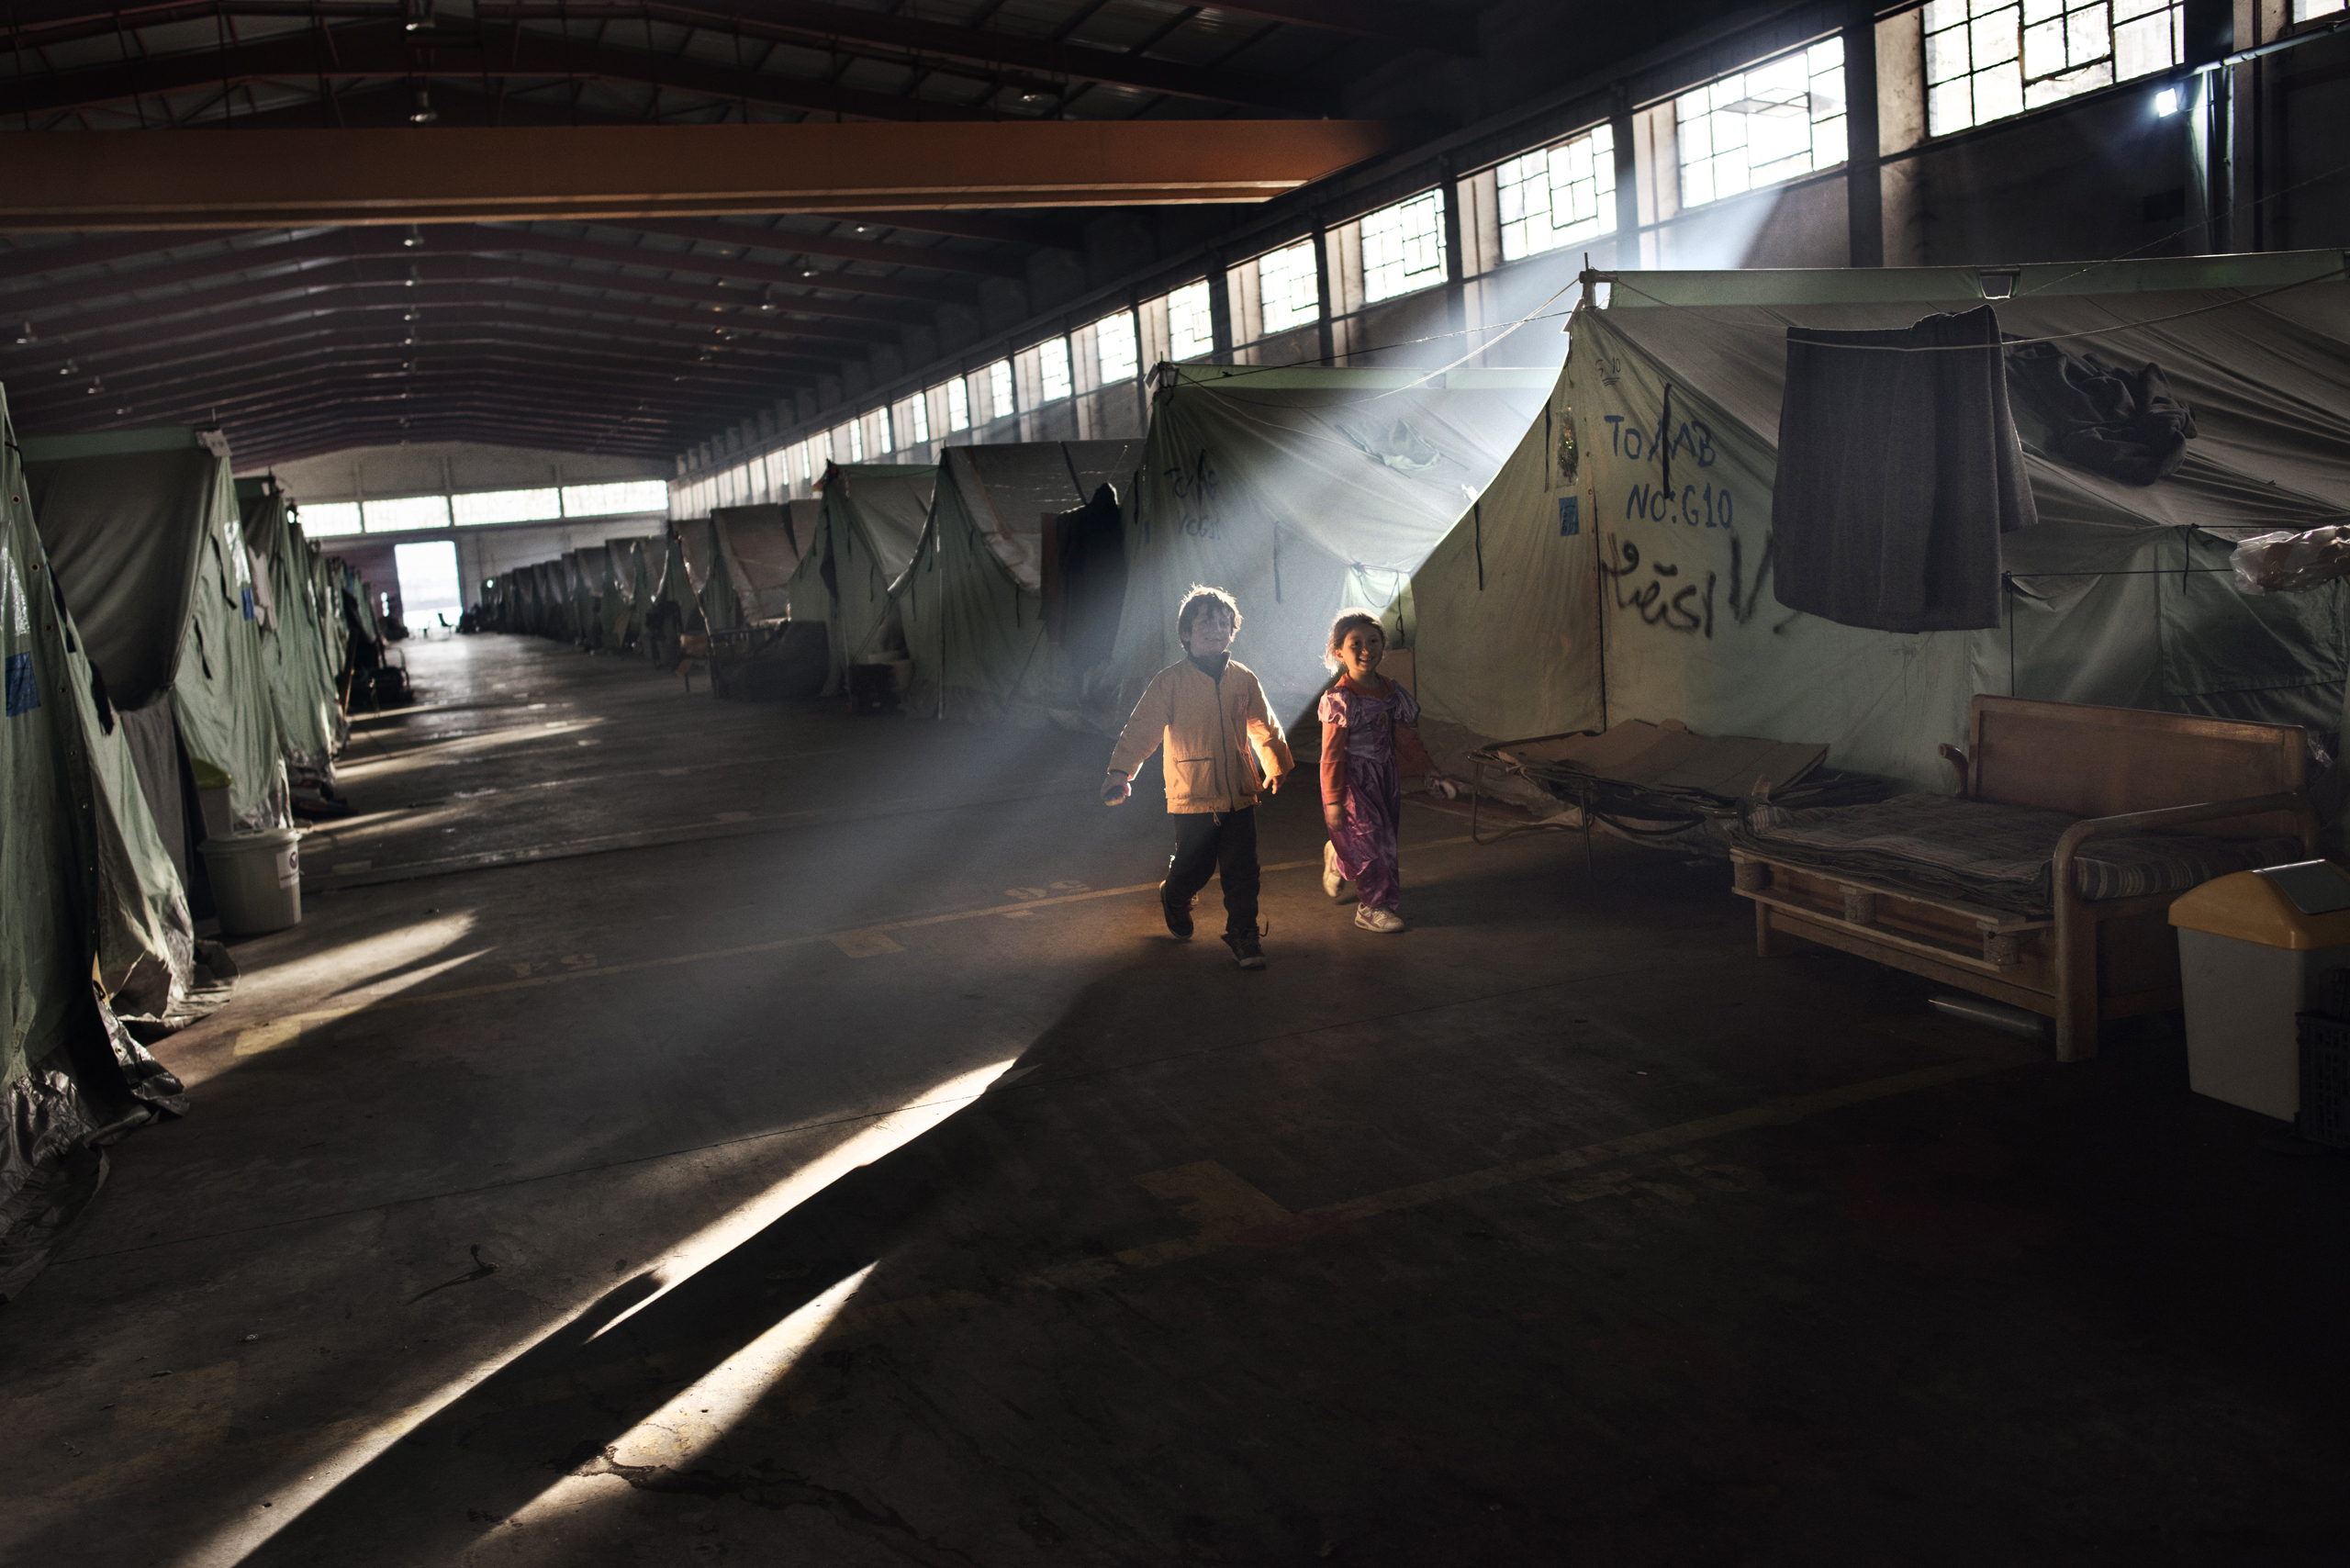 Syrian refugee children run through smoke emitted from fires lit by refugees trying to stay warm at the Oreokastro camp, where many refugees have already been moved to hotels, January 13, 2017.